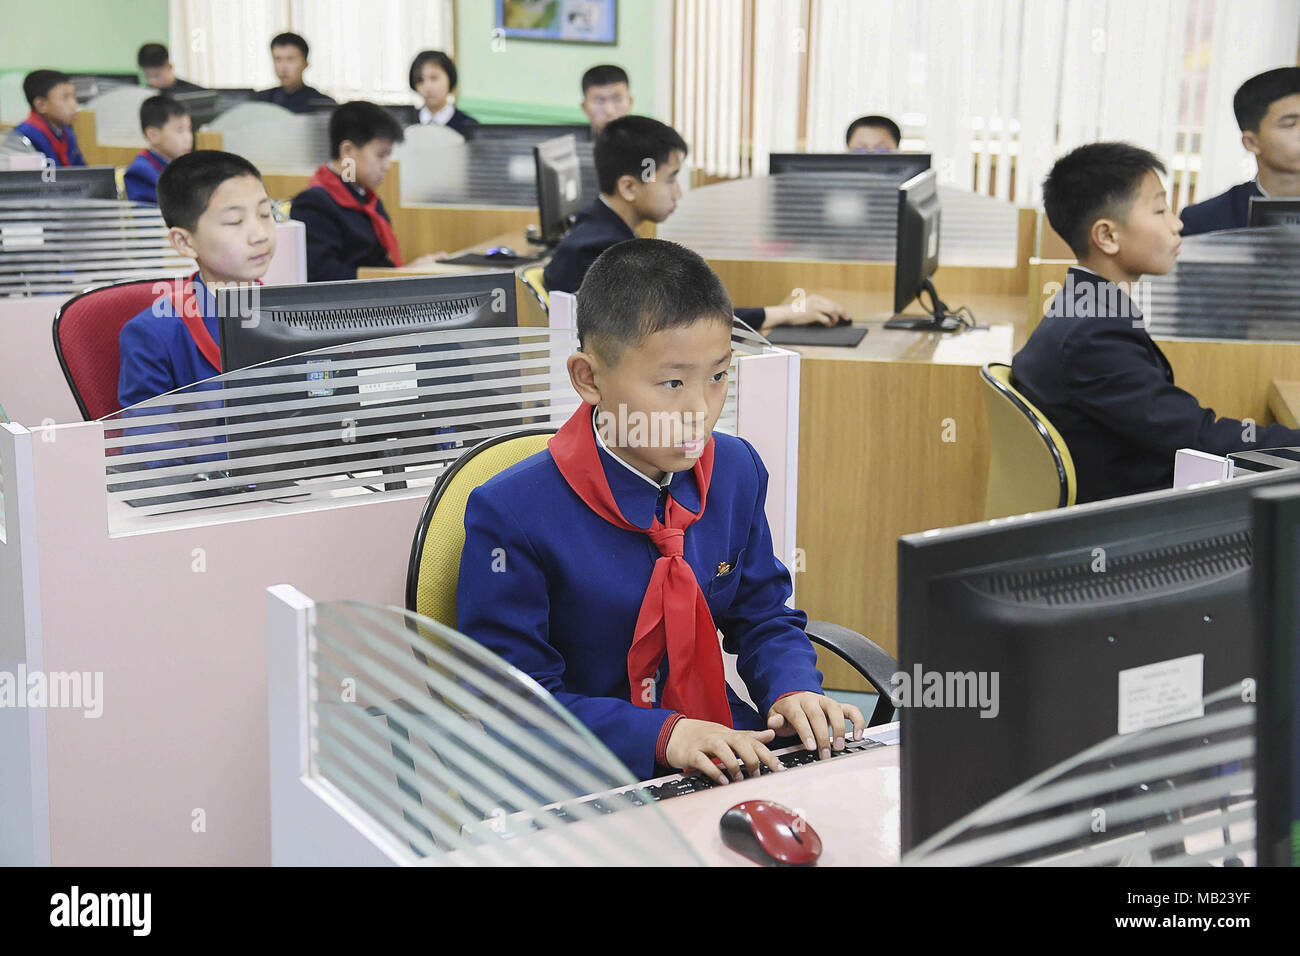 Pyeongyang, NORTH KOREA. 3rd Apr, 2018. March 3, 2018-Pyeongyang, North Korea-North Korean students at the Mankyungdae Boys ' Palace take IT classes. The date approaches, for better or worse. On April 27, the leaders from the two Koreas, technically still at war, will hold a summit at the border. The parties met today to work out security details. To hold talks with South Korean president Moon Jae-in, the leader of North Korea, Kim Jong-un, will take unprecedented steps for a man in his position literally. The summit will be held south of the military demarcation line in the truce village of Stock Photo